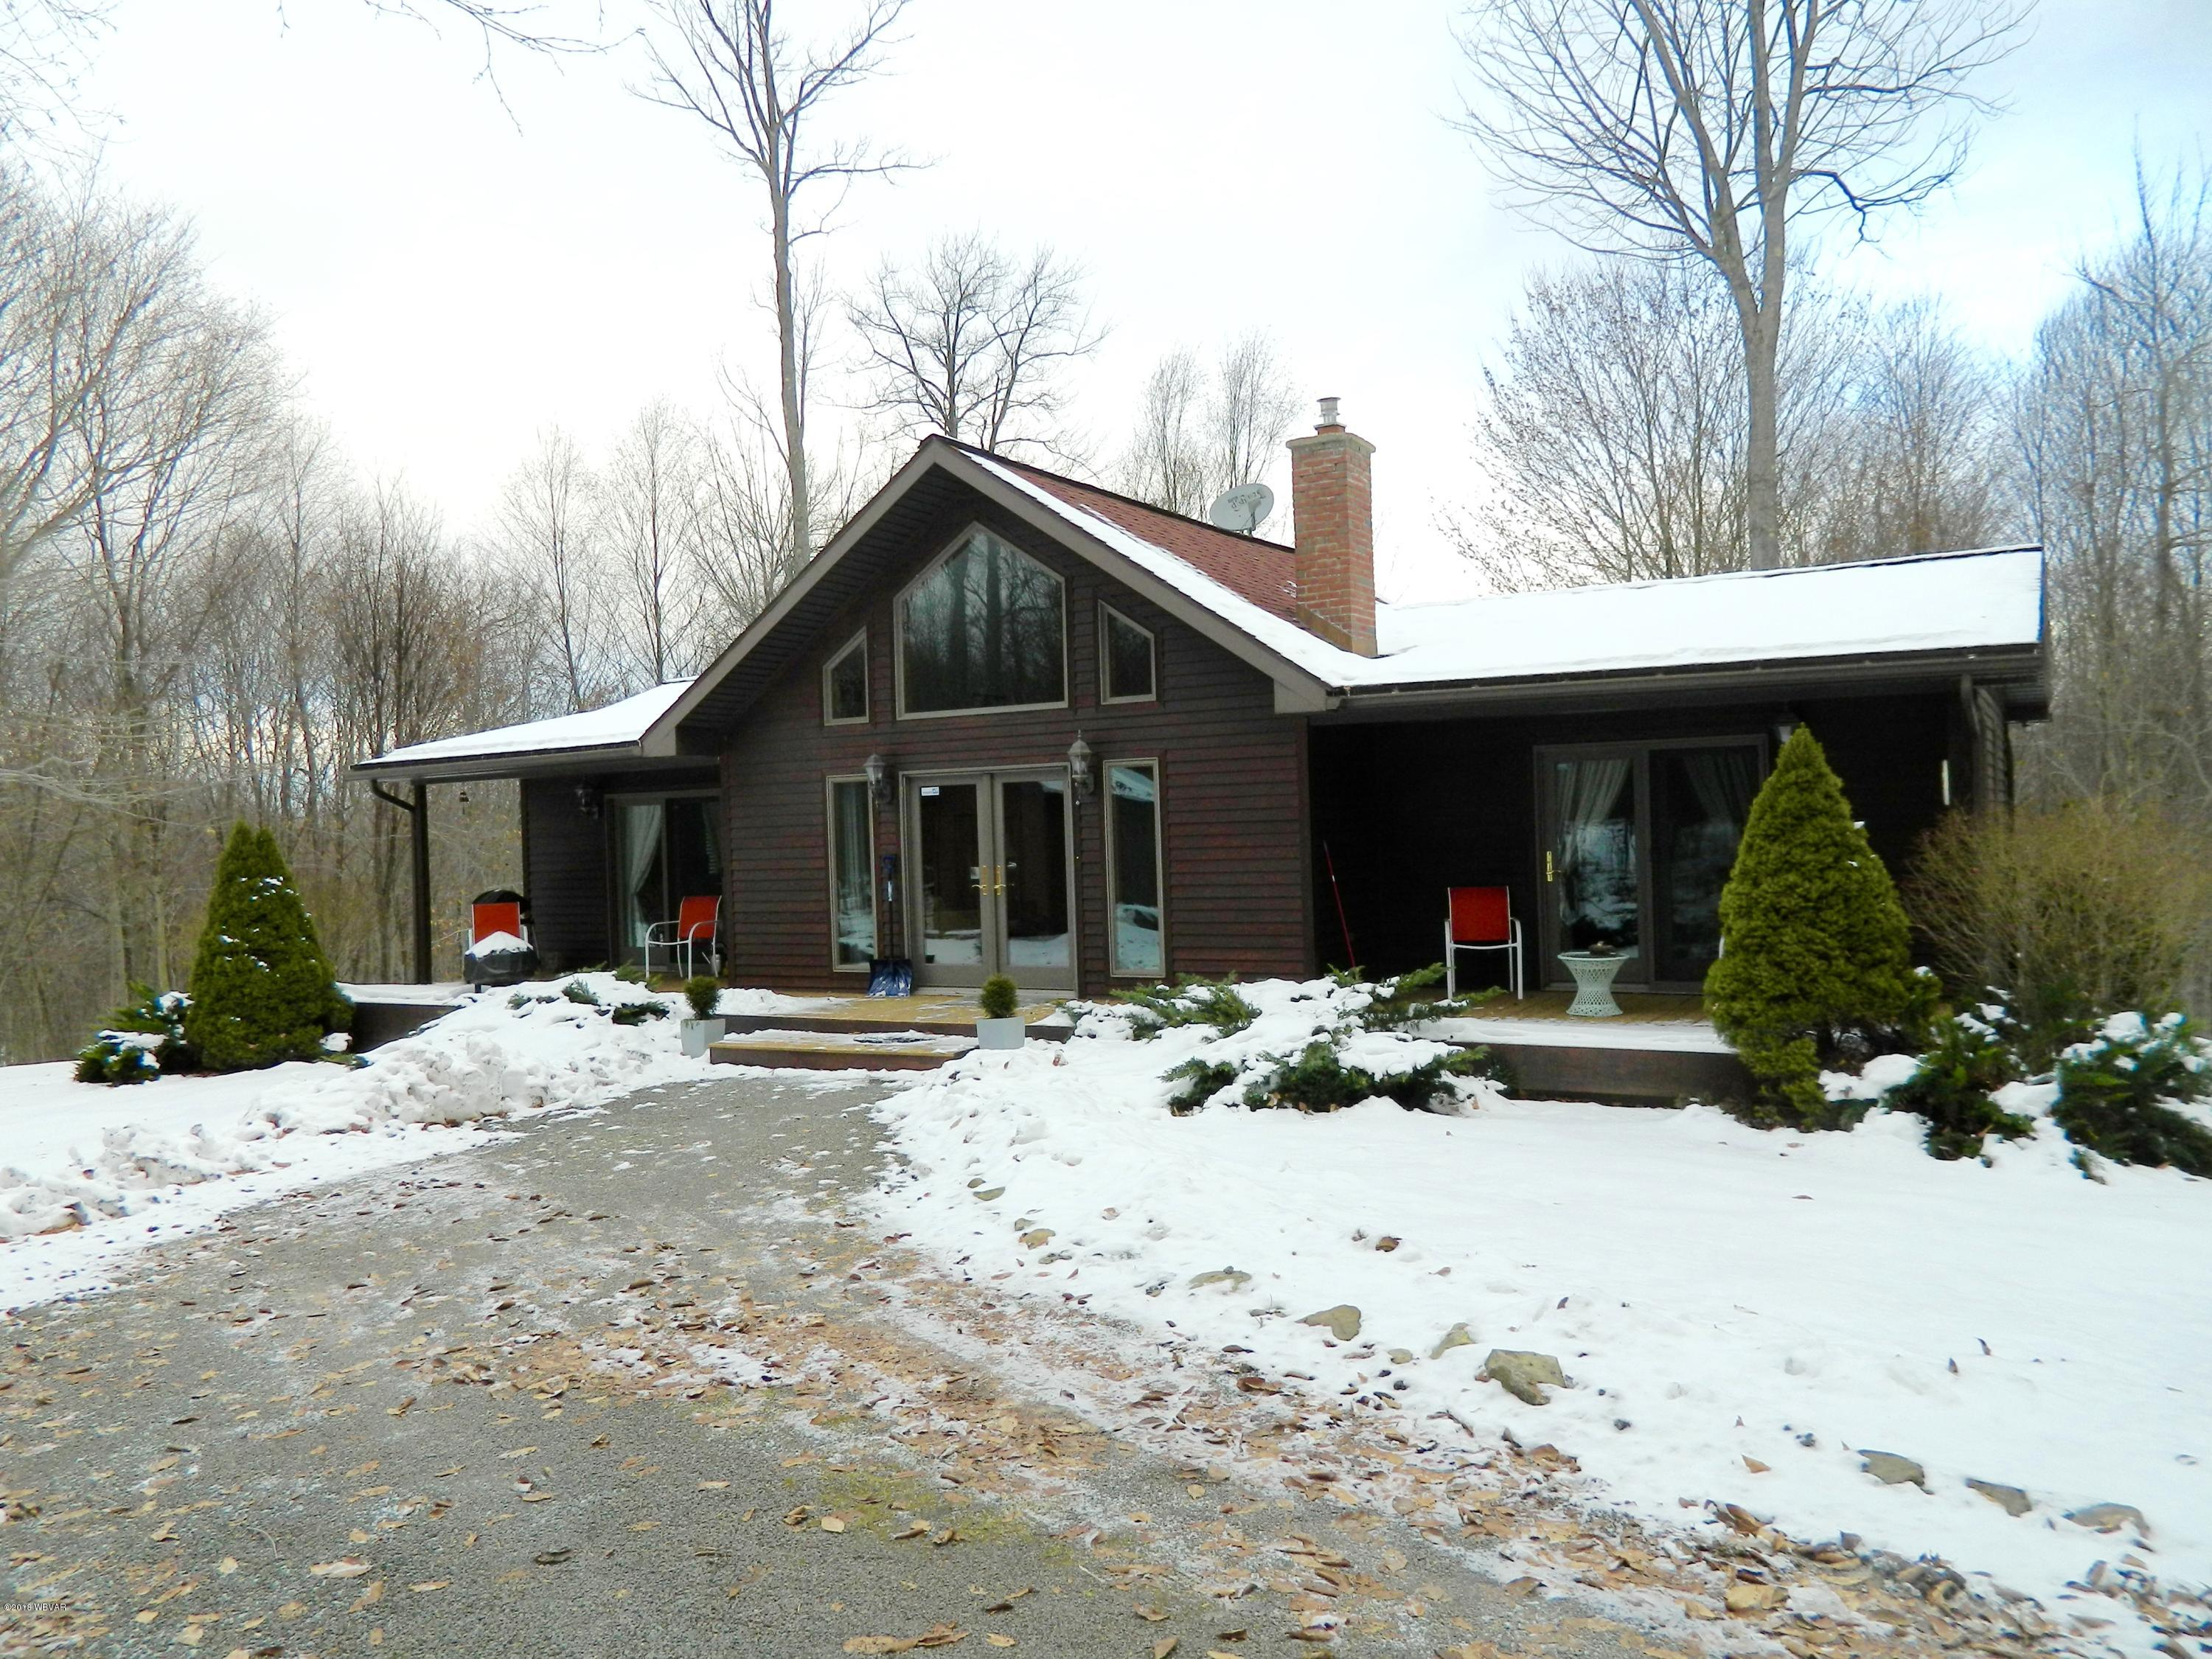 192 POLE BRIDGE ROAD,Laporte,PA 18626,2 Bedrooms Bedrooms,2 BathroomsBathrooms,Cabin/vacation home,POLE BRIDGE,WB-86014